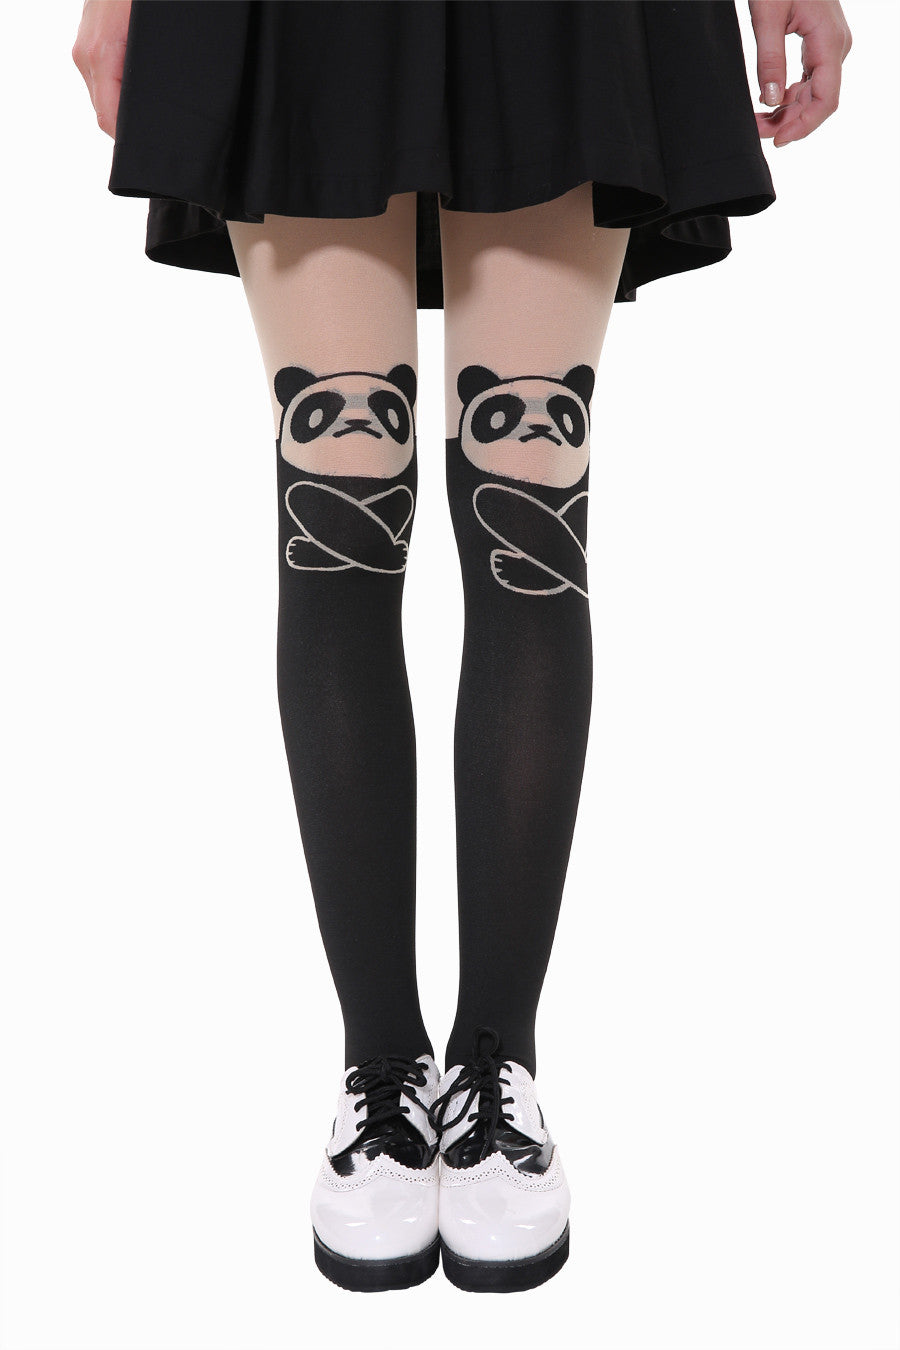 Cute Panda Tights